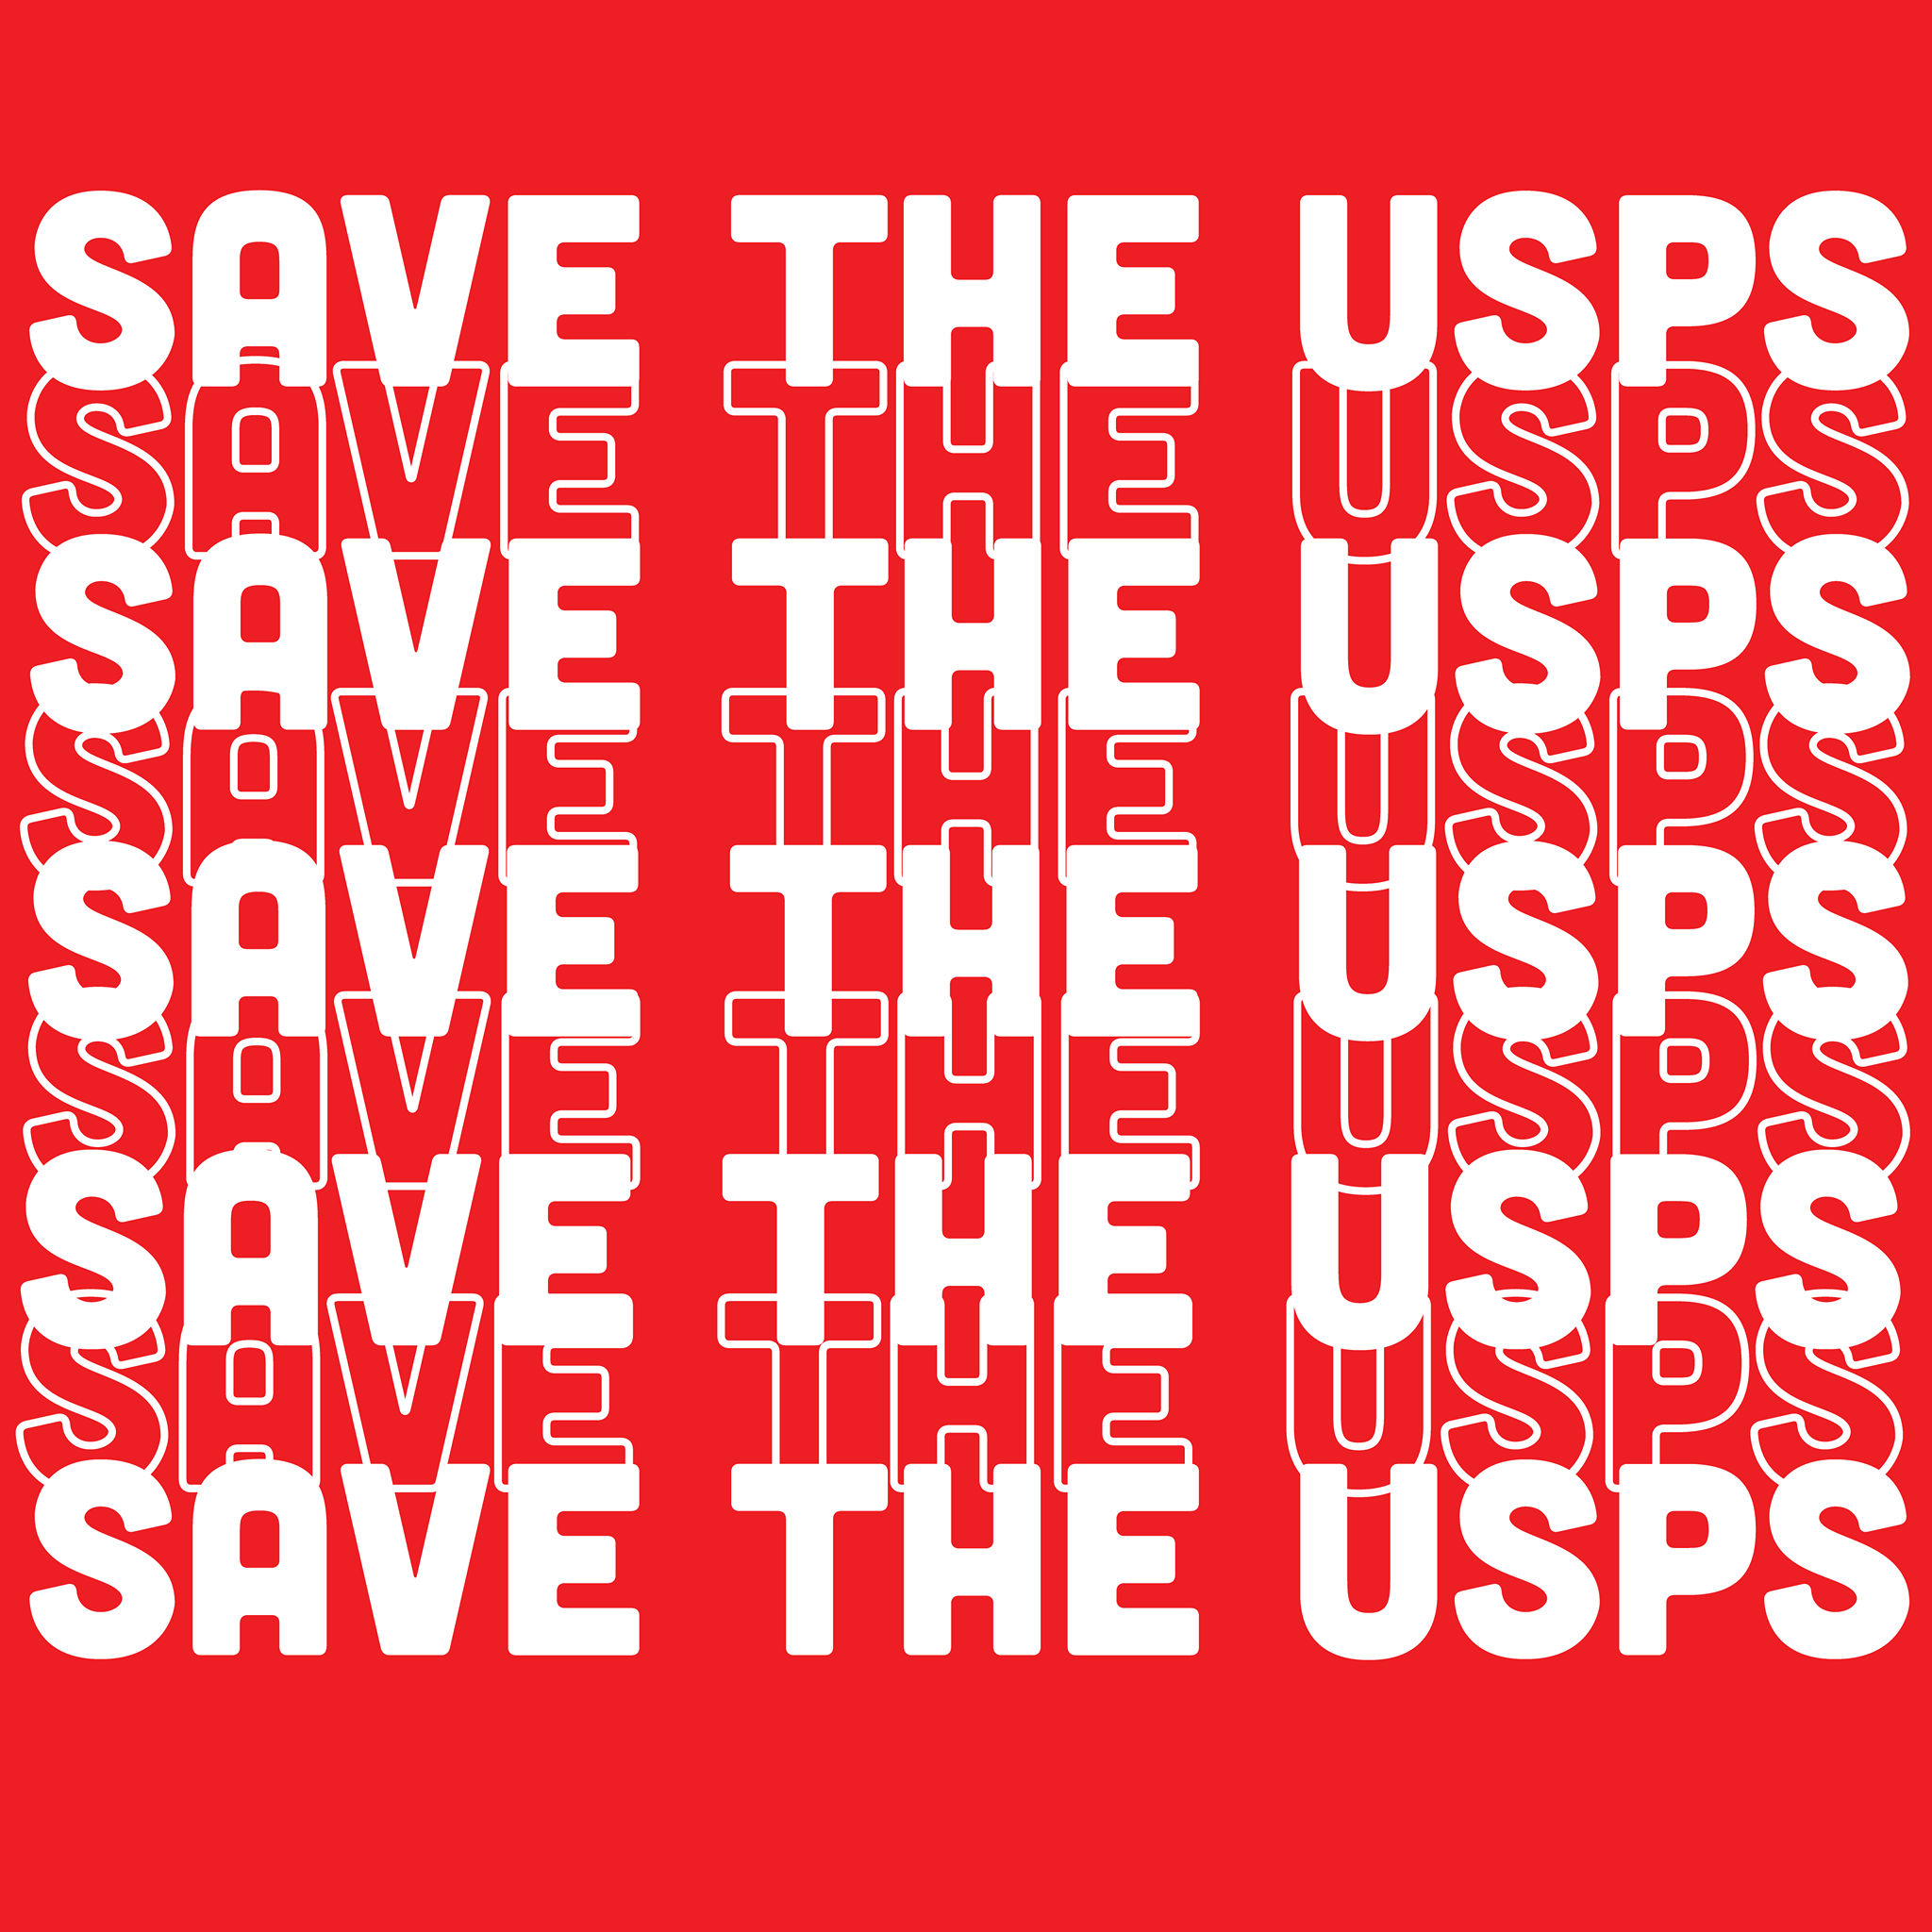 Join the Fight to Save the USPS